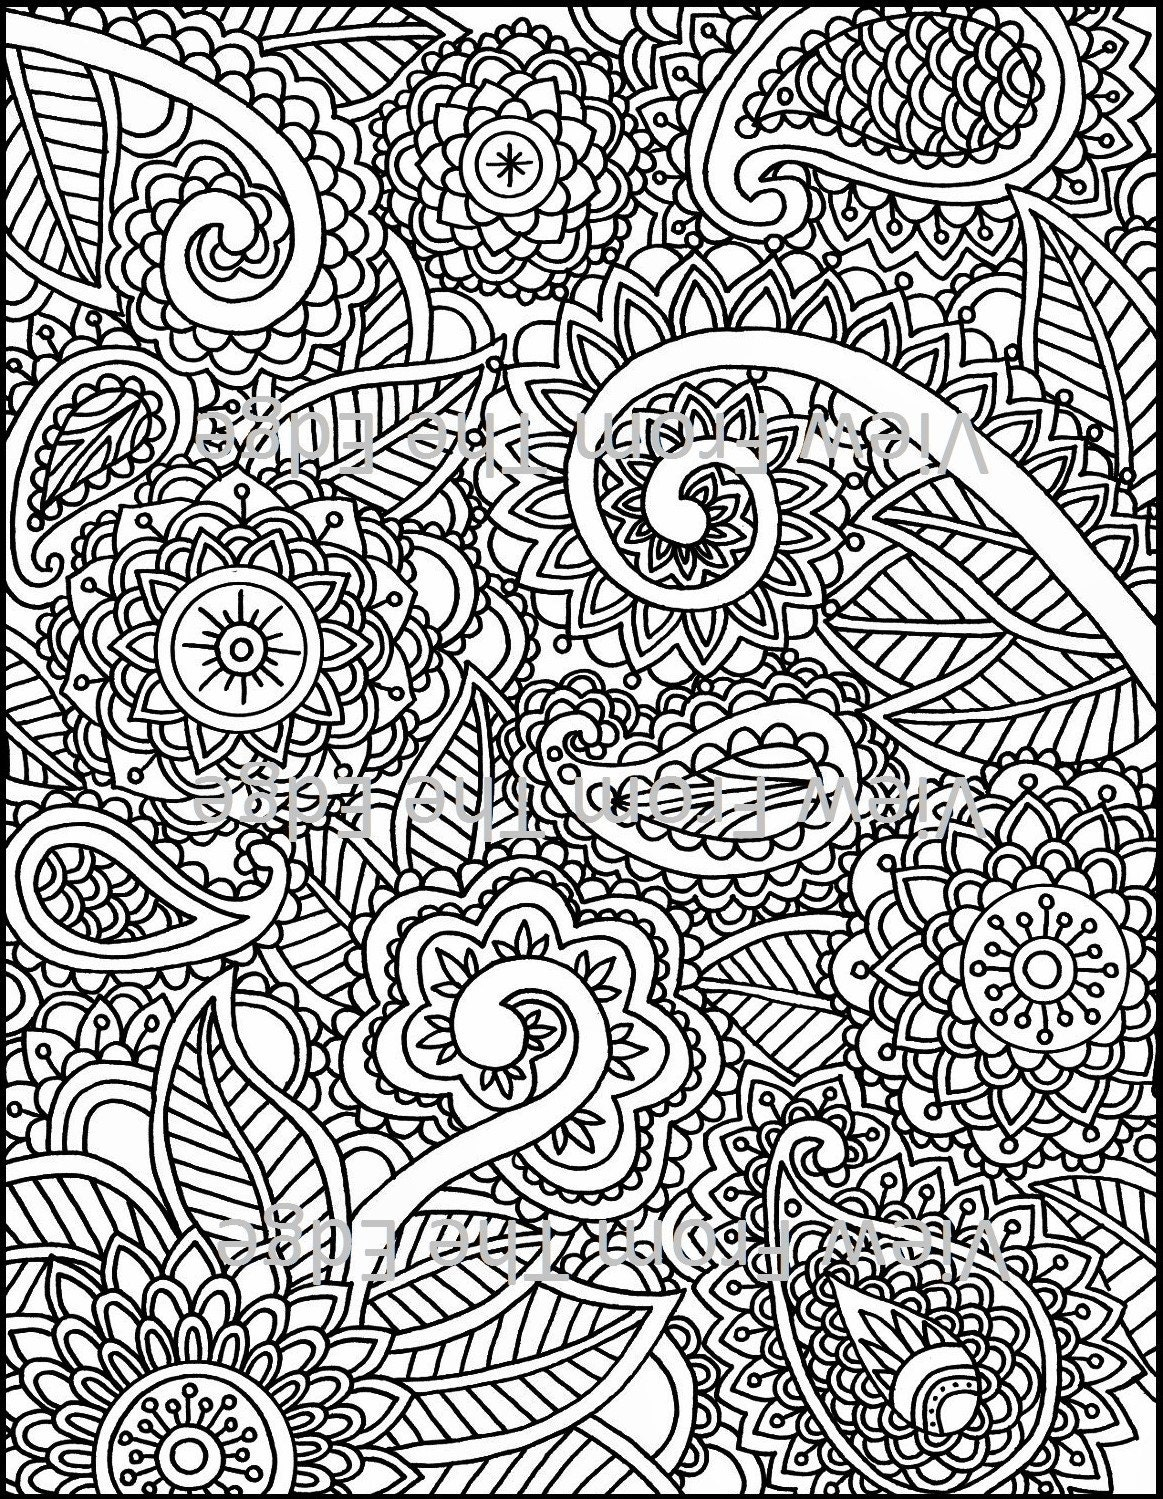 Mehndi Coloring Page Henna Adult Printable PDF Original Design | Etsy